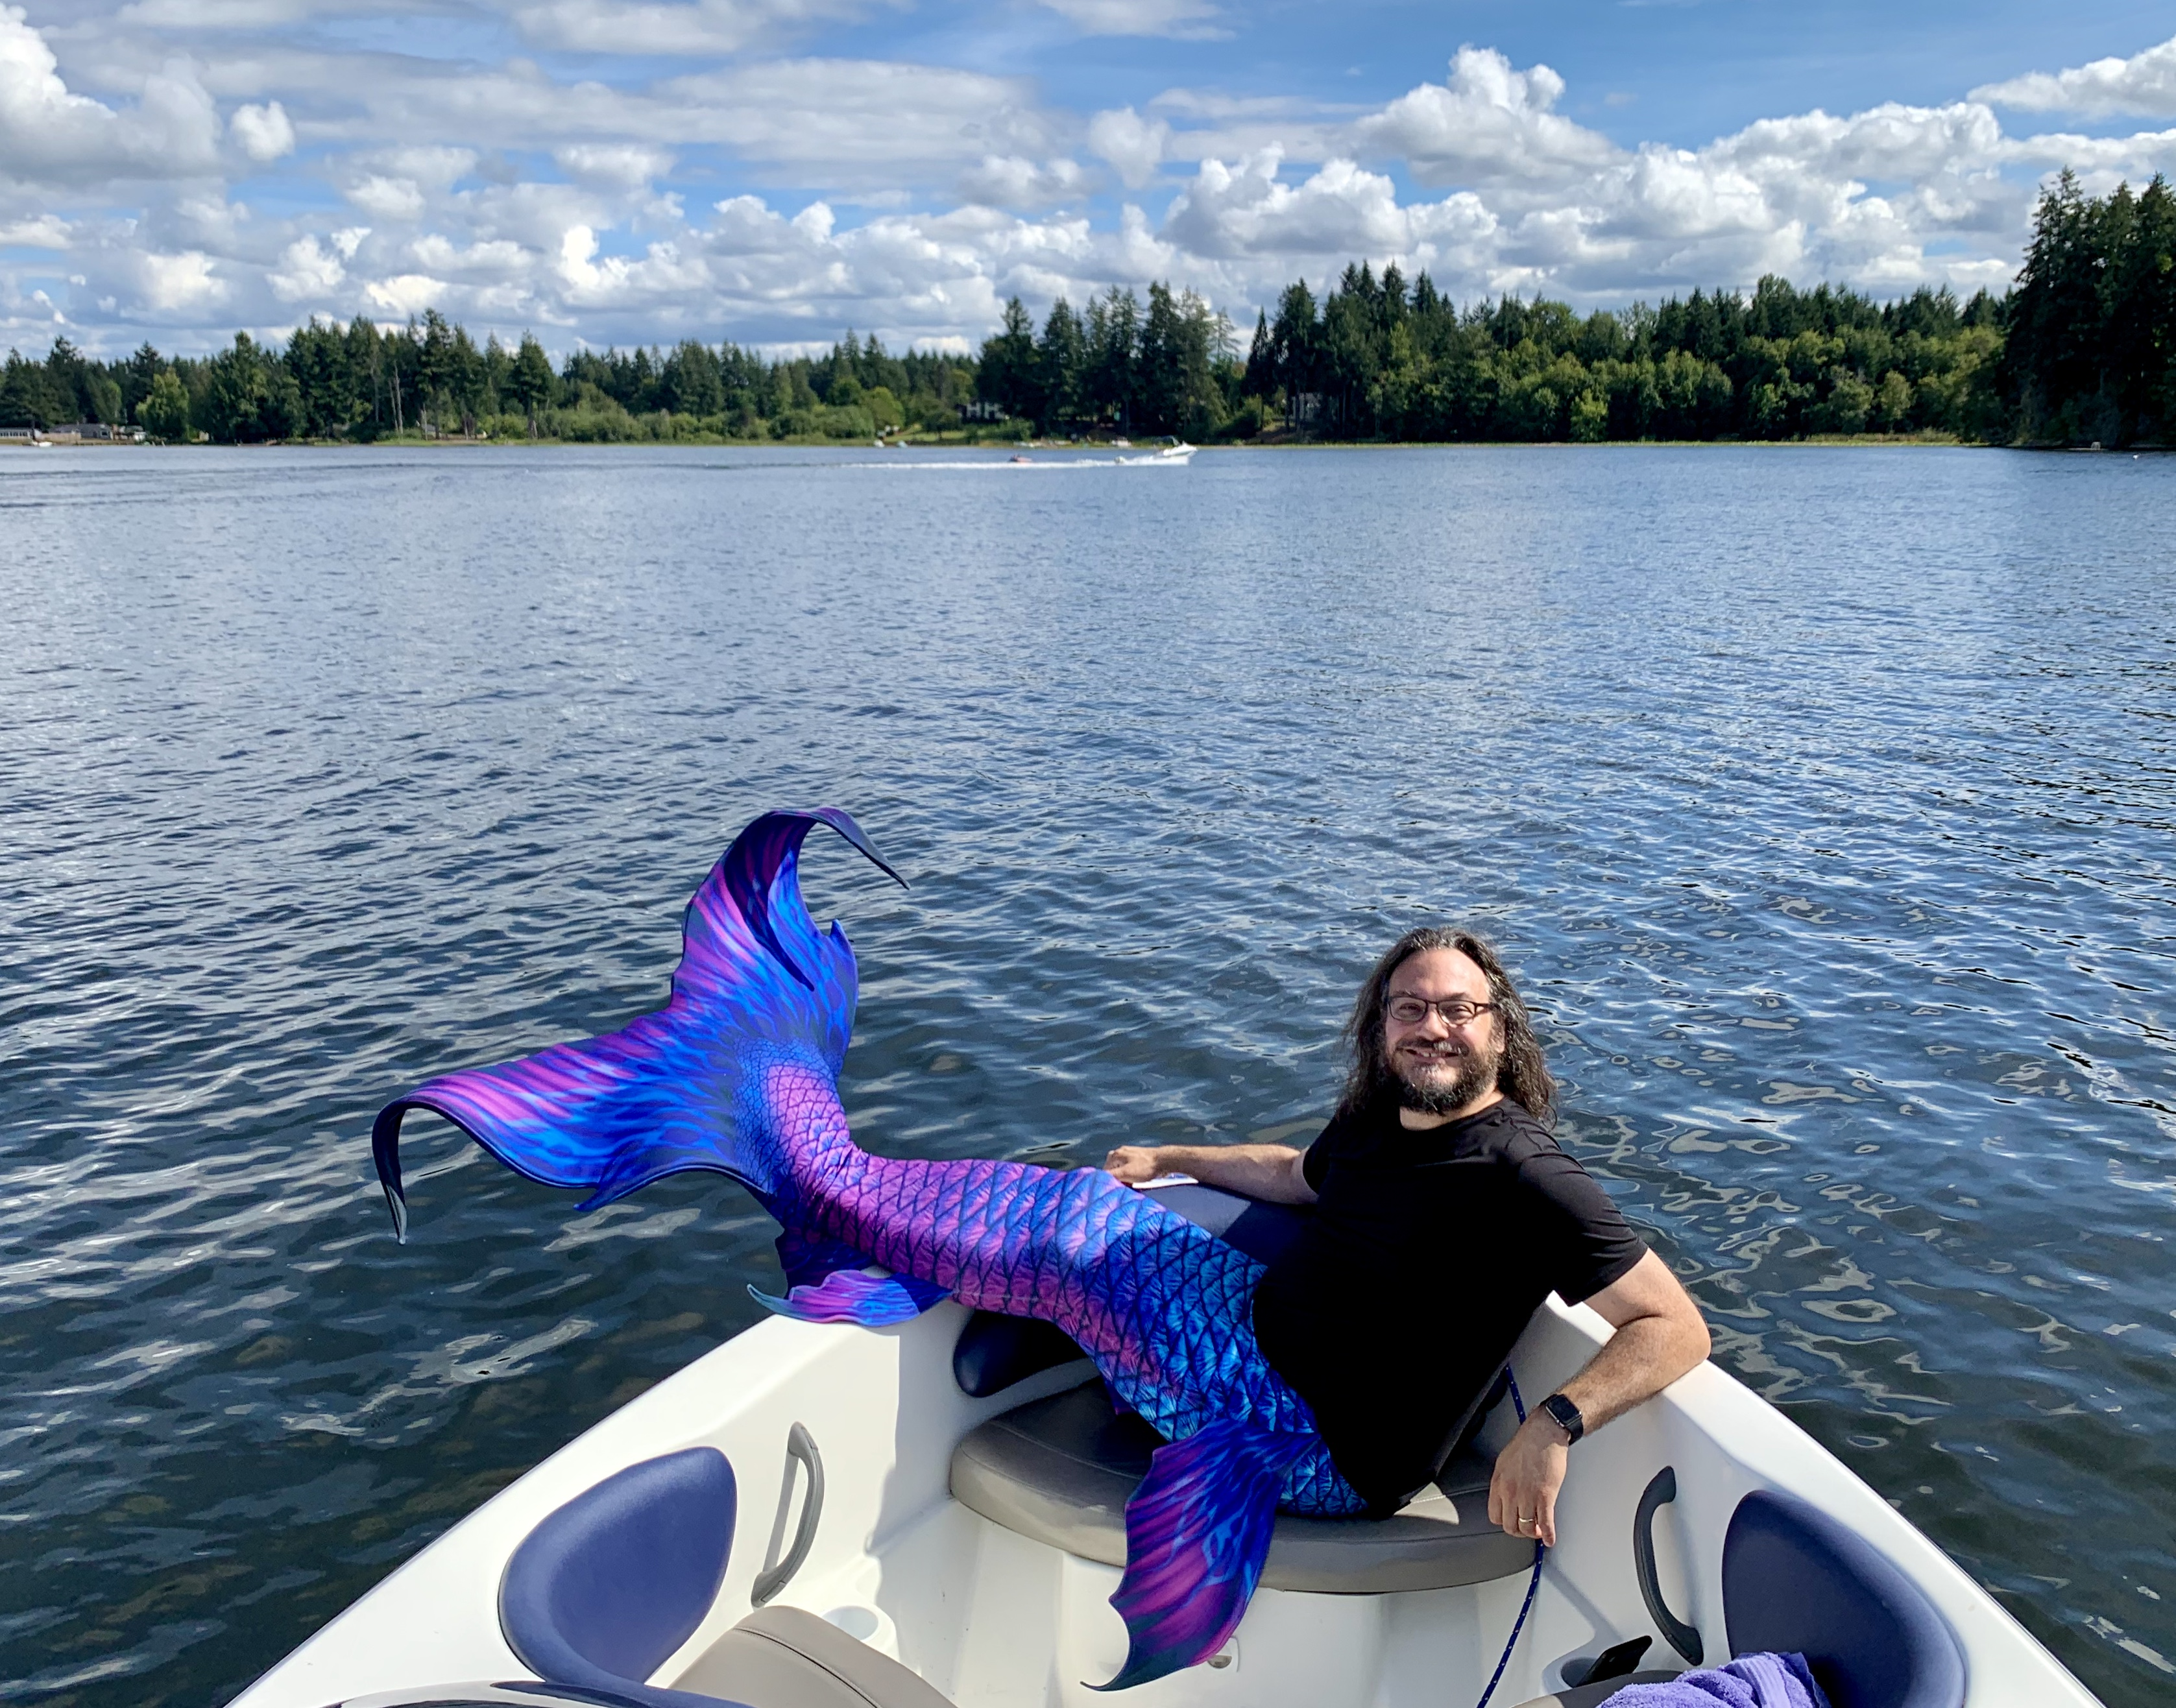 Mermaid Me Summer 2020 Photo #1239